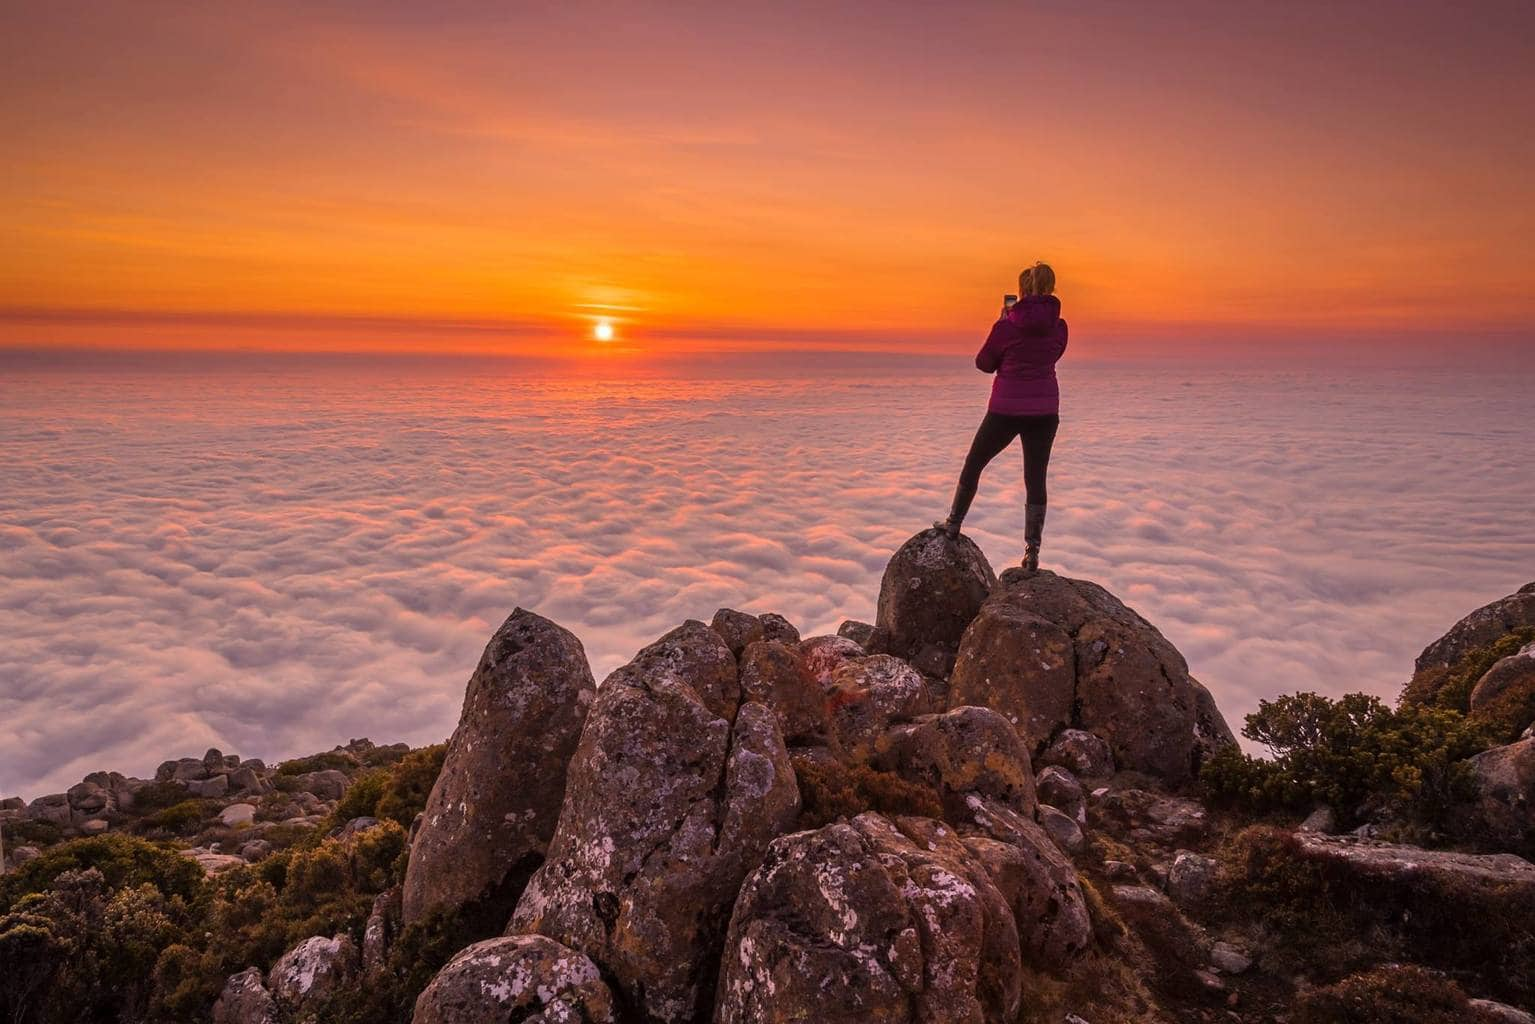 Thank you everyone for the kind comments on my first post to this group (the sunrise over a sea of clouds). I thought I'd share another shot from that same morning. It was quite a surreal experience being above the clouds as the sun rose - I've only experienced that from planes previously! View from Mt Wellington, which usually overlooks the city of Hobart (popn 200k) in Tasmania, Australia. I like to think that the city is still sleeping cosily, wrapped up in this oversize fluffy blanket!